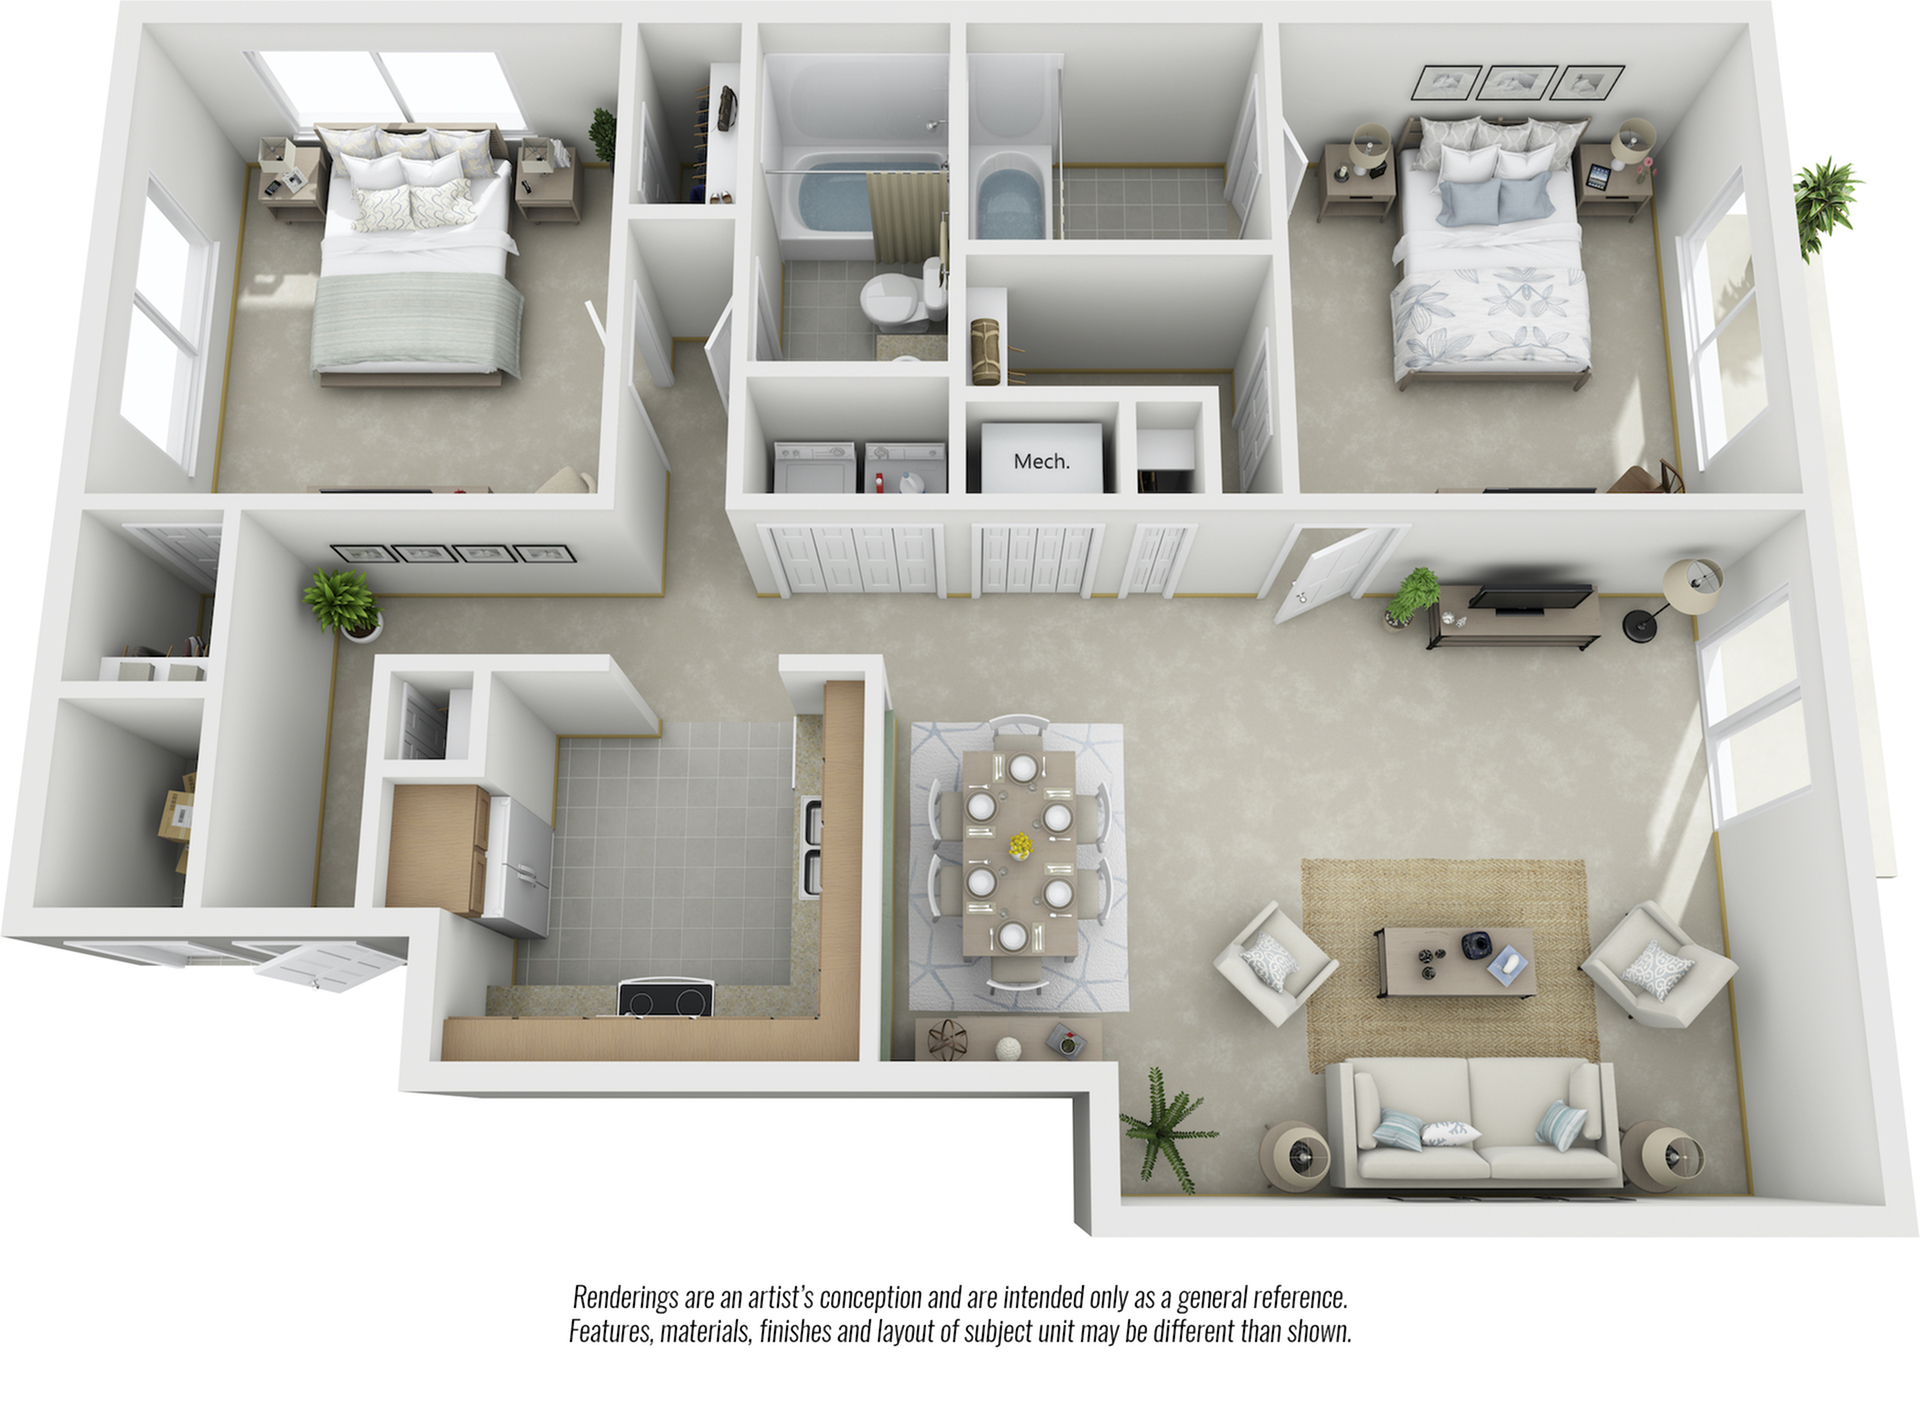 Chestnut 2 bedrooms 2 bathrooms floor plan